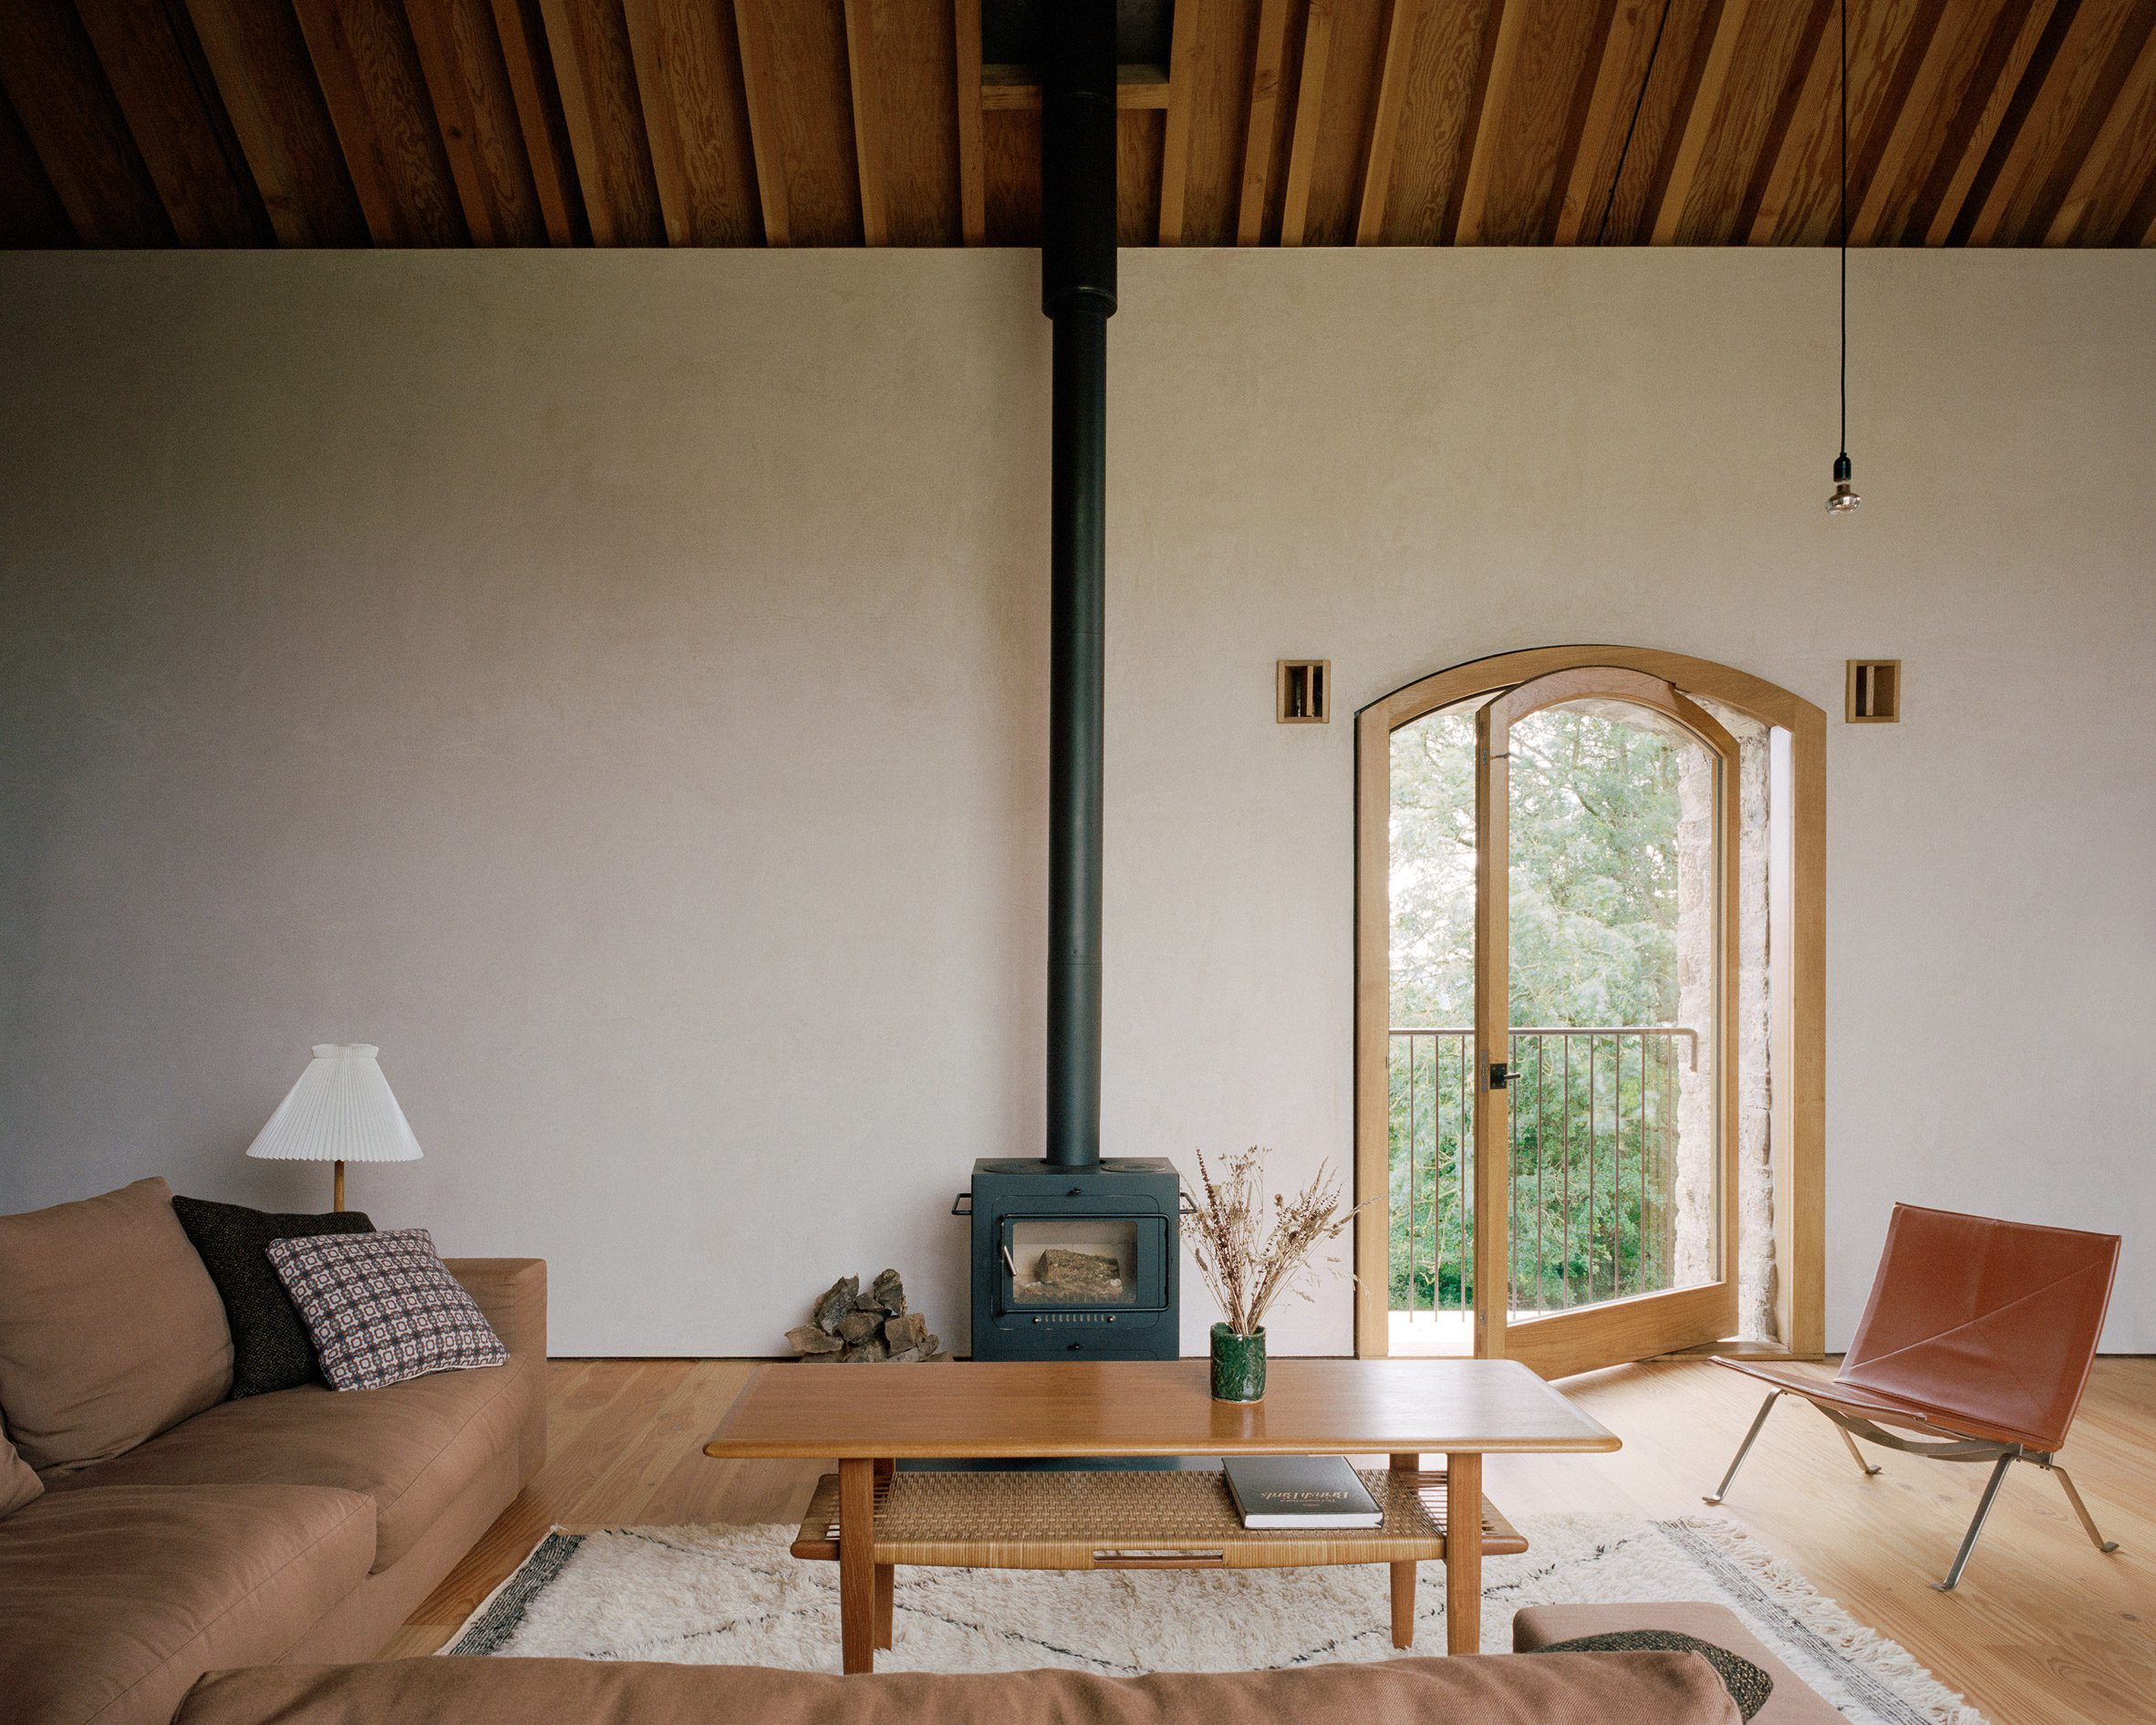 Wood-burning stove in living room